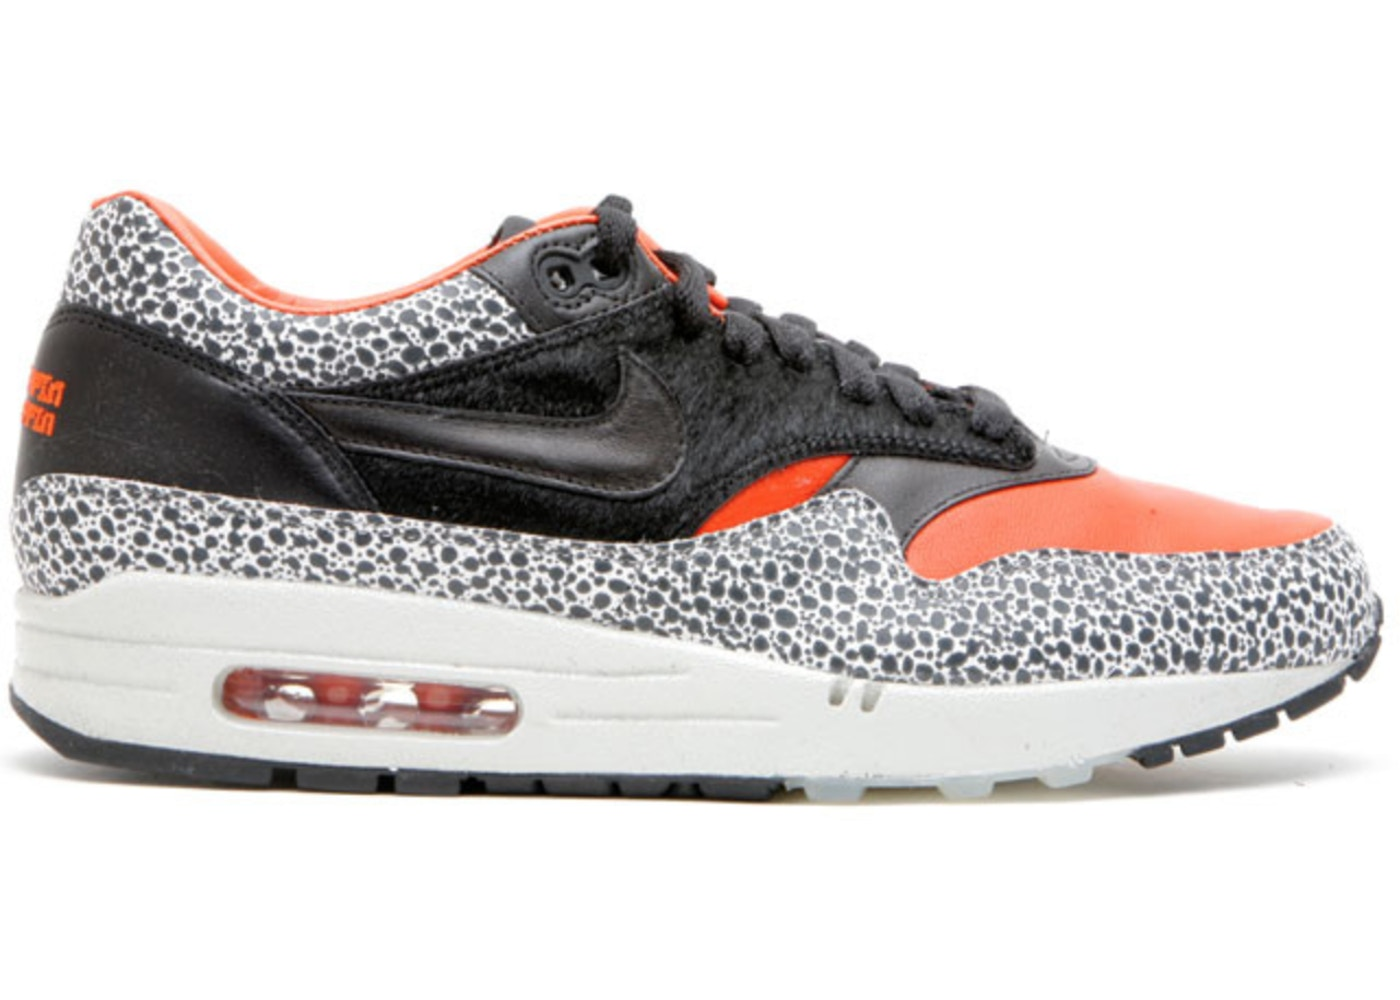 official photos 399d7 fed71 Air Max 1 Keep Ripping Stop Slippin - 332326-801